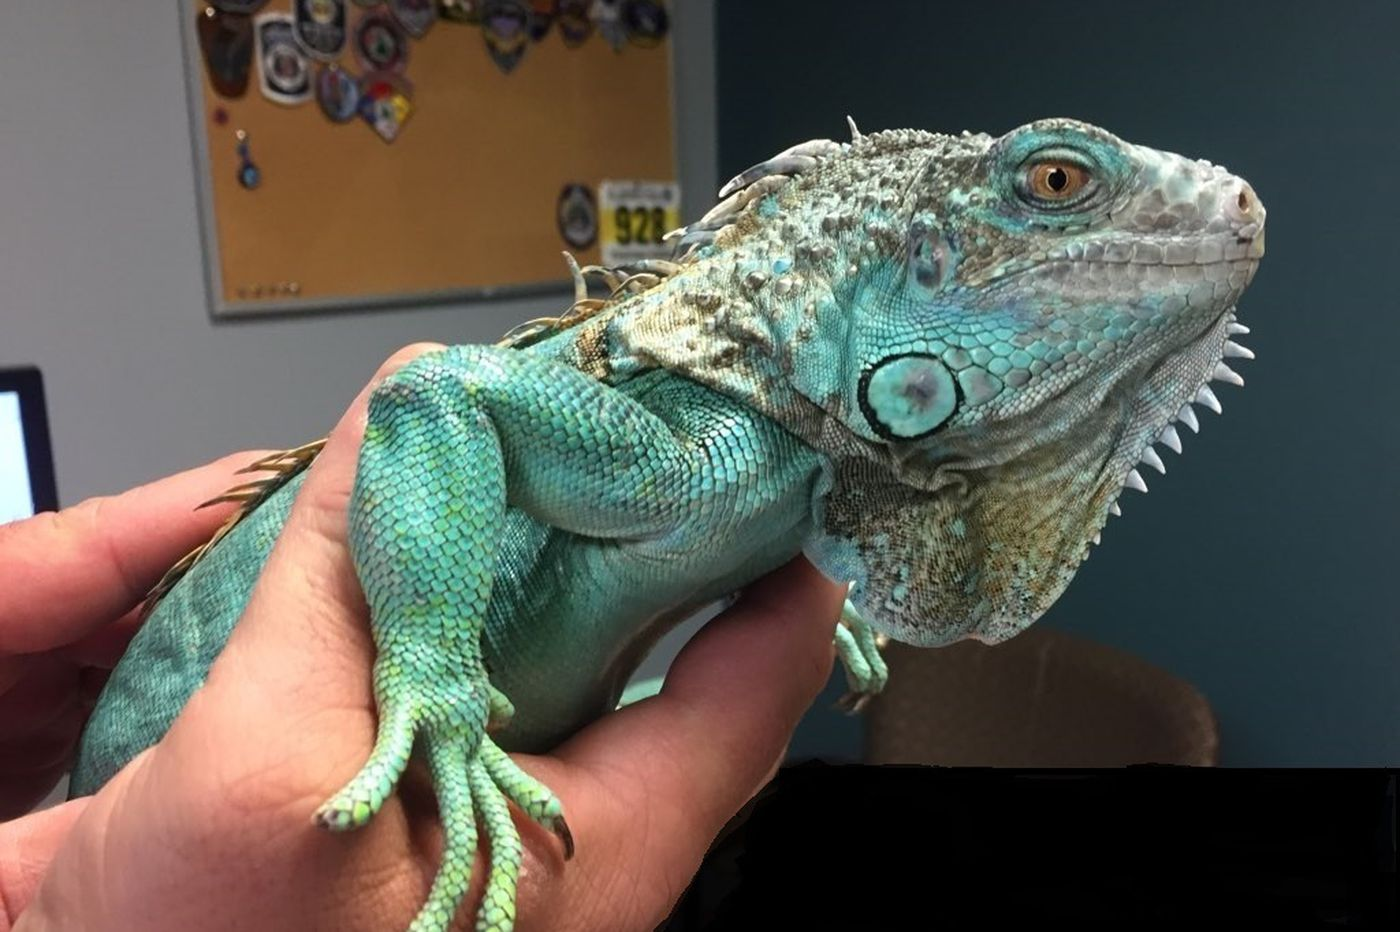 A man hurled his iguana at the manager of an Ohio restaurant, police say